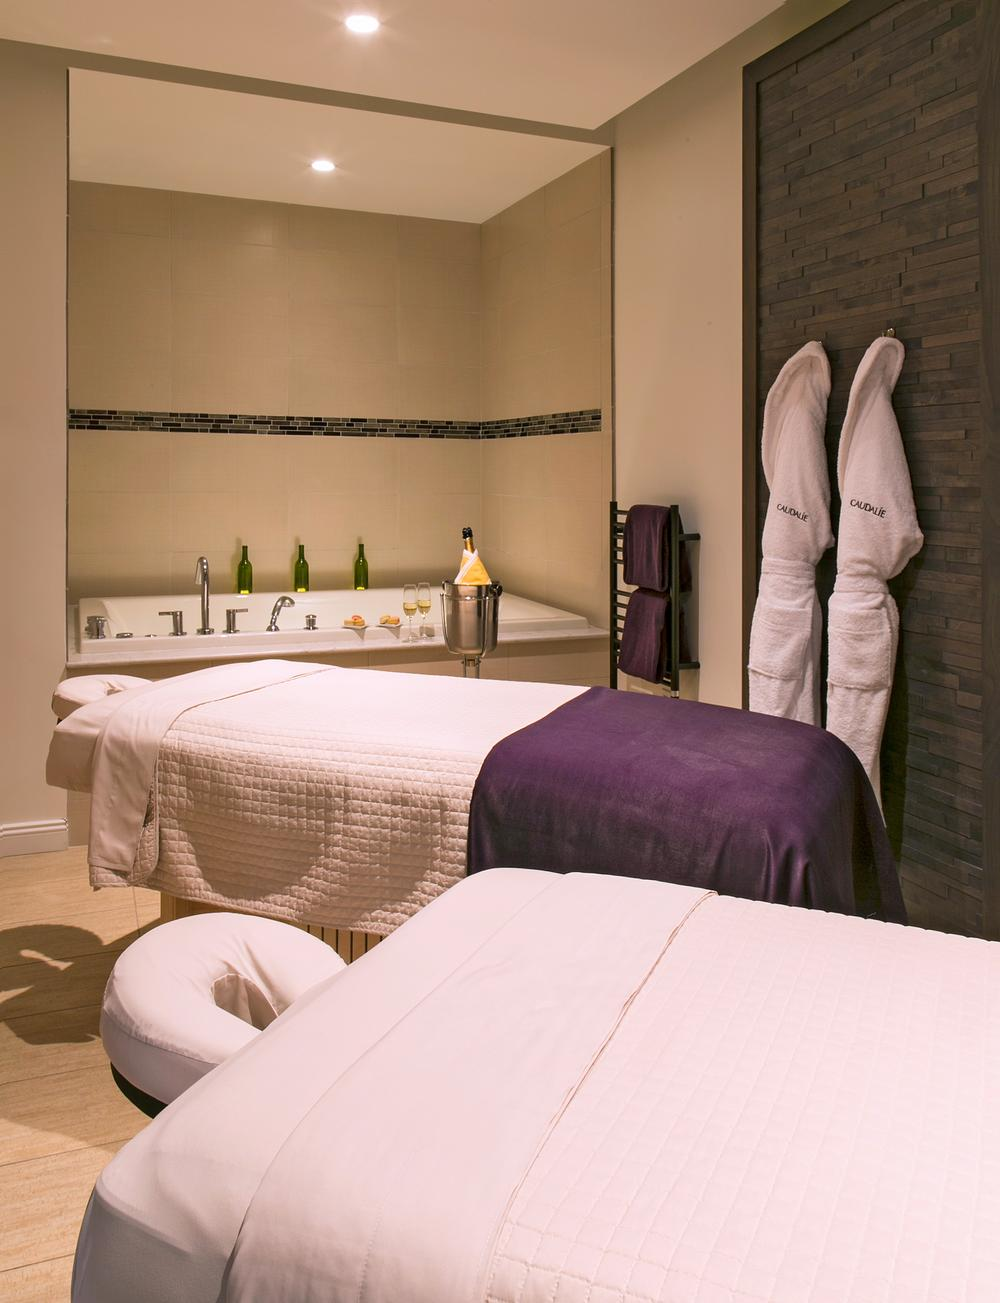 Guests can enjoy a glass of wine or chocolate desserts while they relax at Evangeline Spa